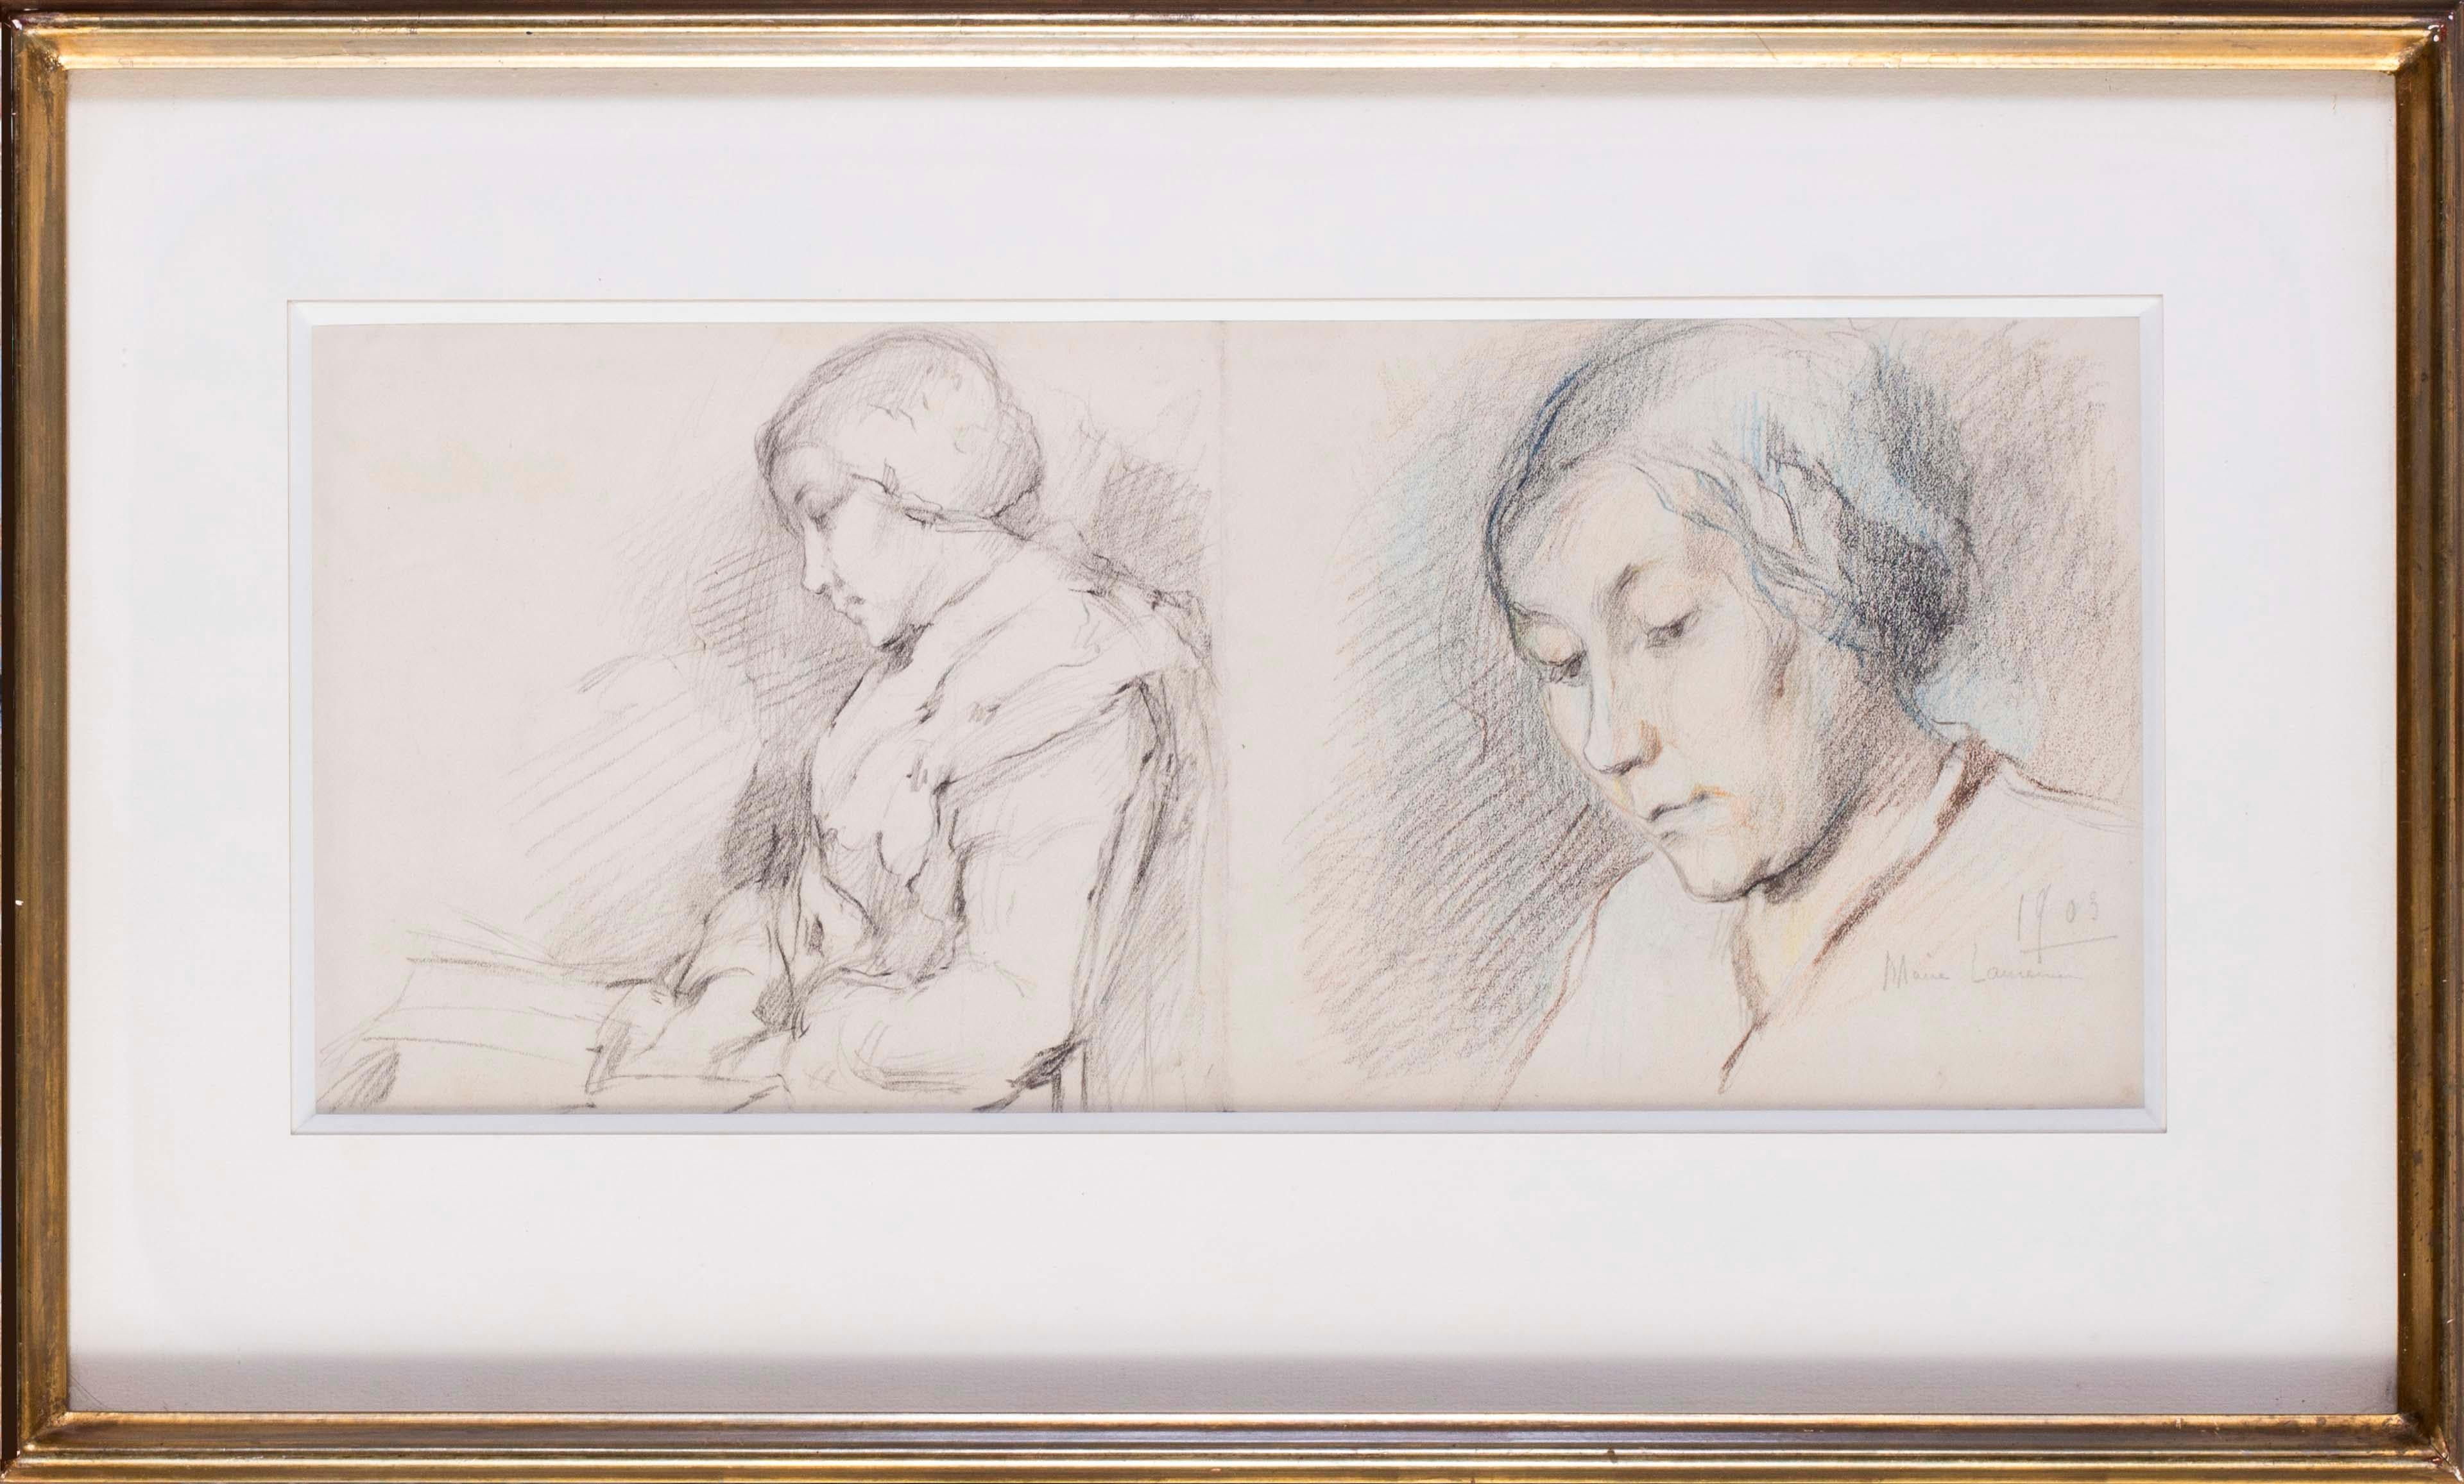 1903 portrait drawing by Marie Laurencin of her mother